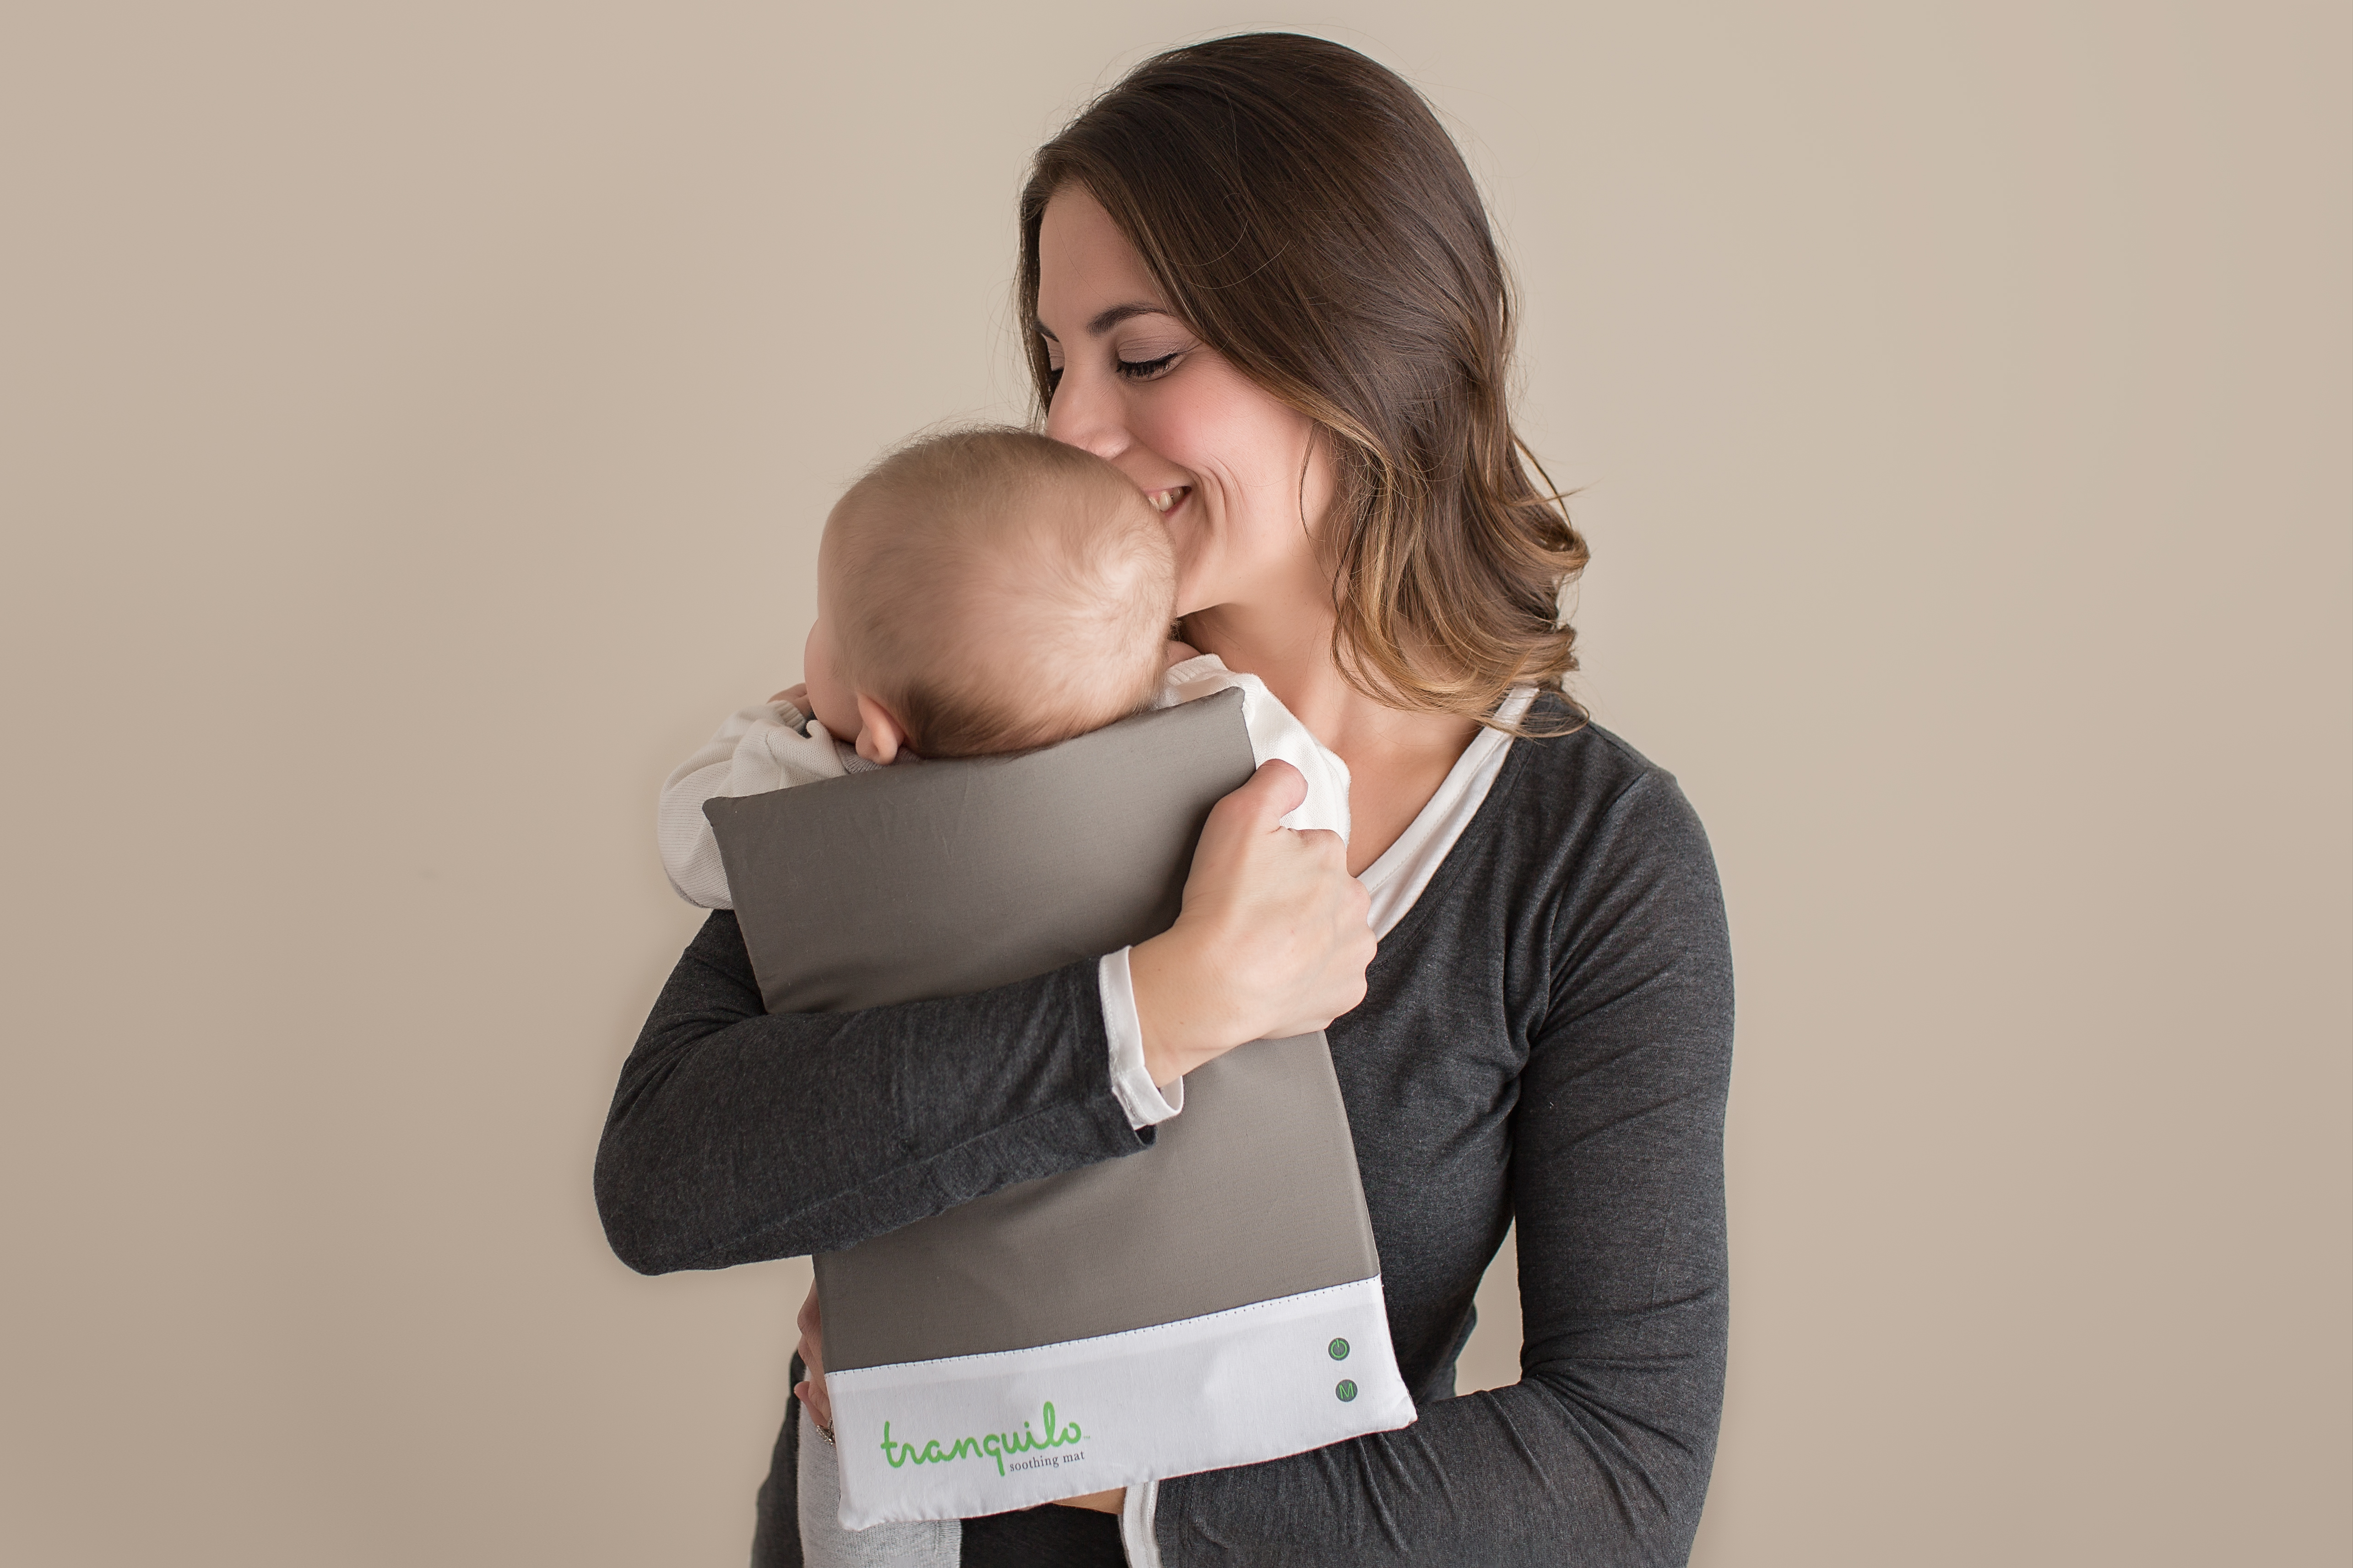 Size LARGE BABY TRANQUILO MAT Soothes babies to sleep anytime anywhere